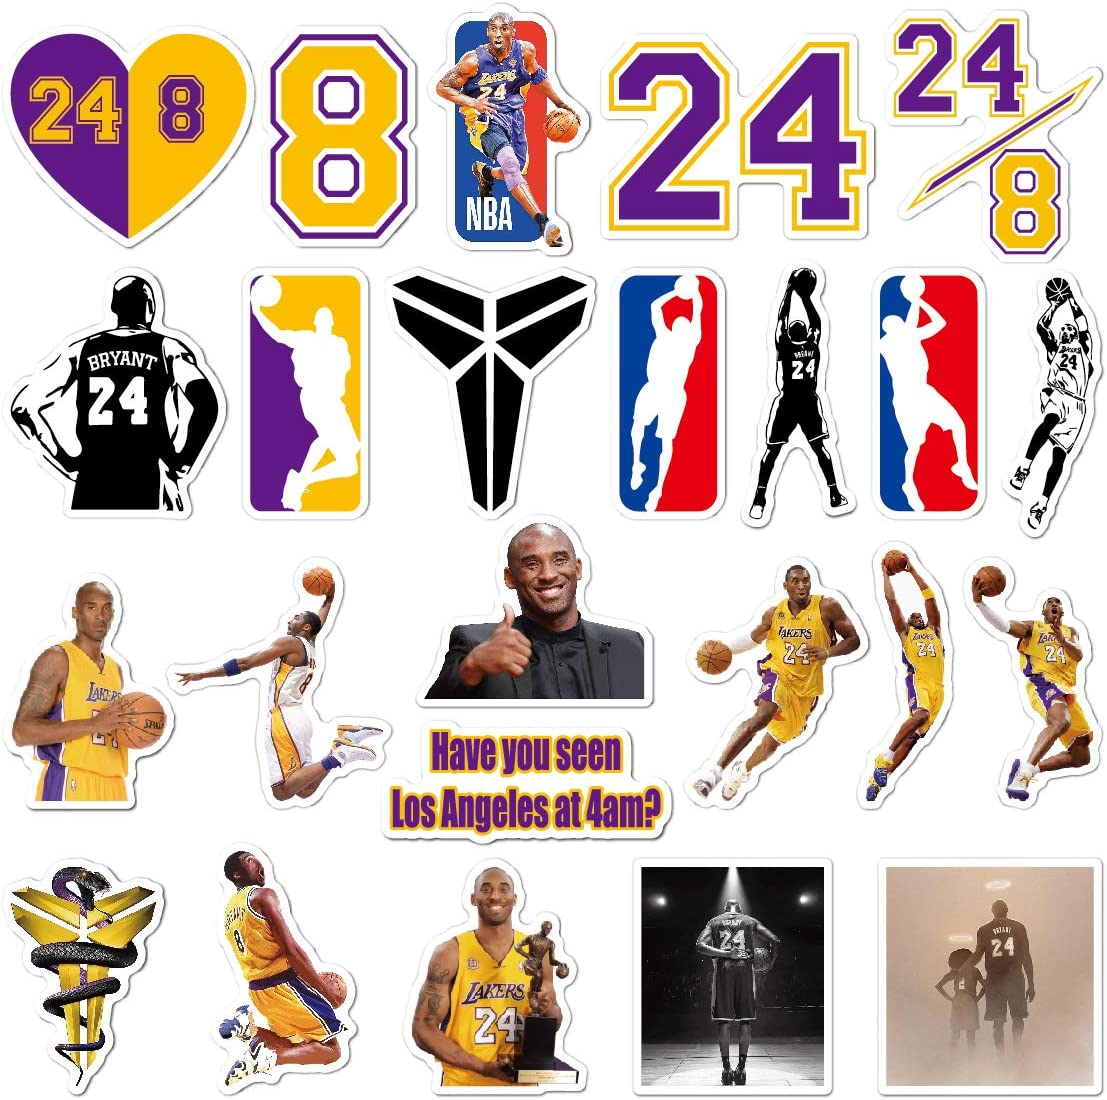 YKHEN Stickers for Hydro Flask, Vinyl Waterproof Kobe Bryant Water Bottle Stickers for Hydroflasks, Laptop, Phone, Cool Trendy Stickers for Boys Teens Mans(24pcs)